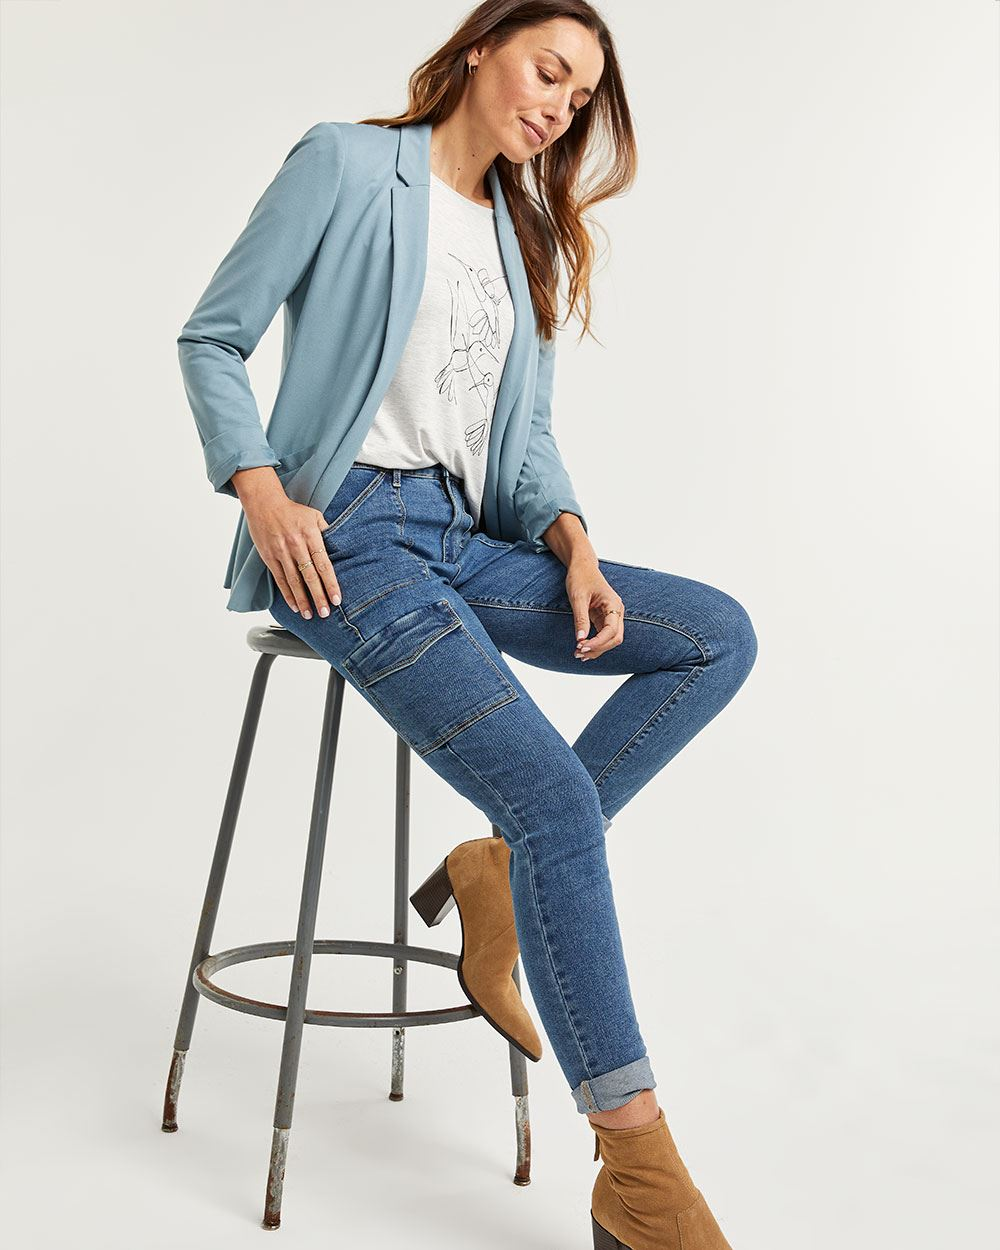 High Rise Cargo Jeans - Petite